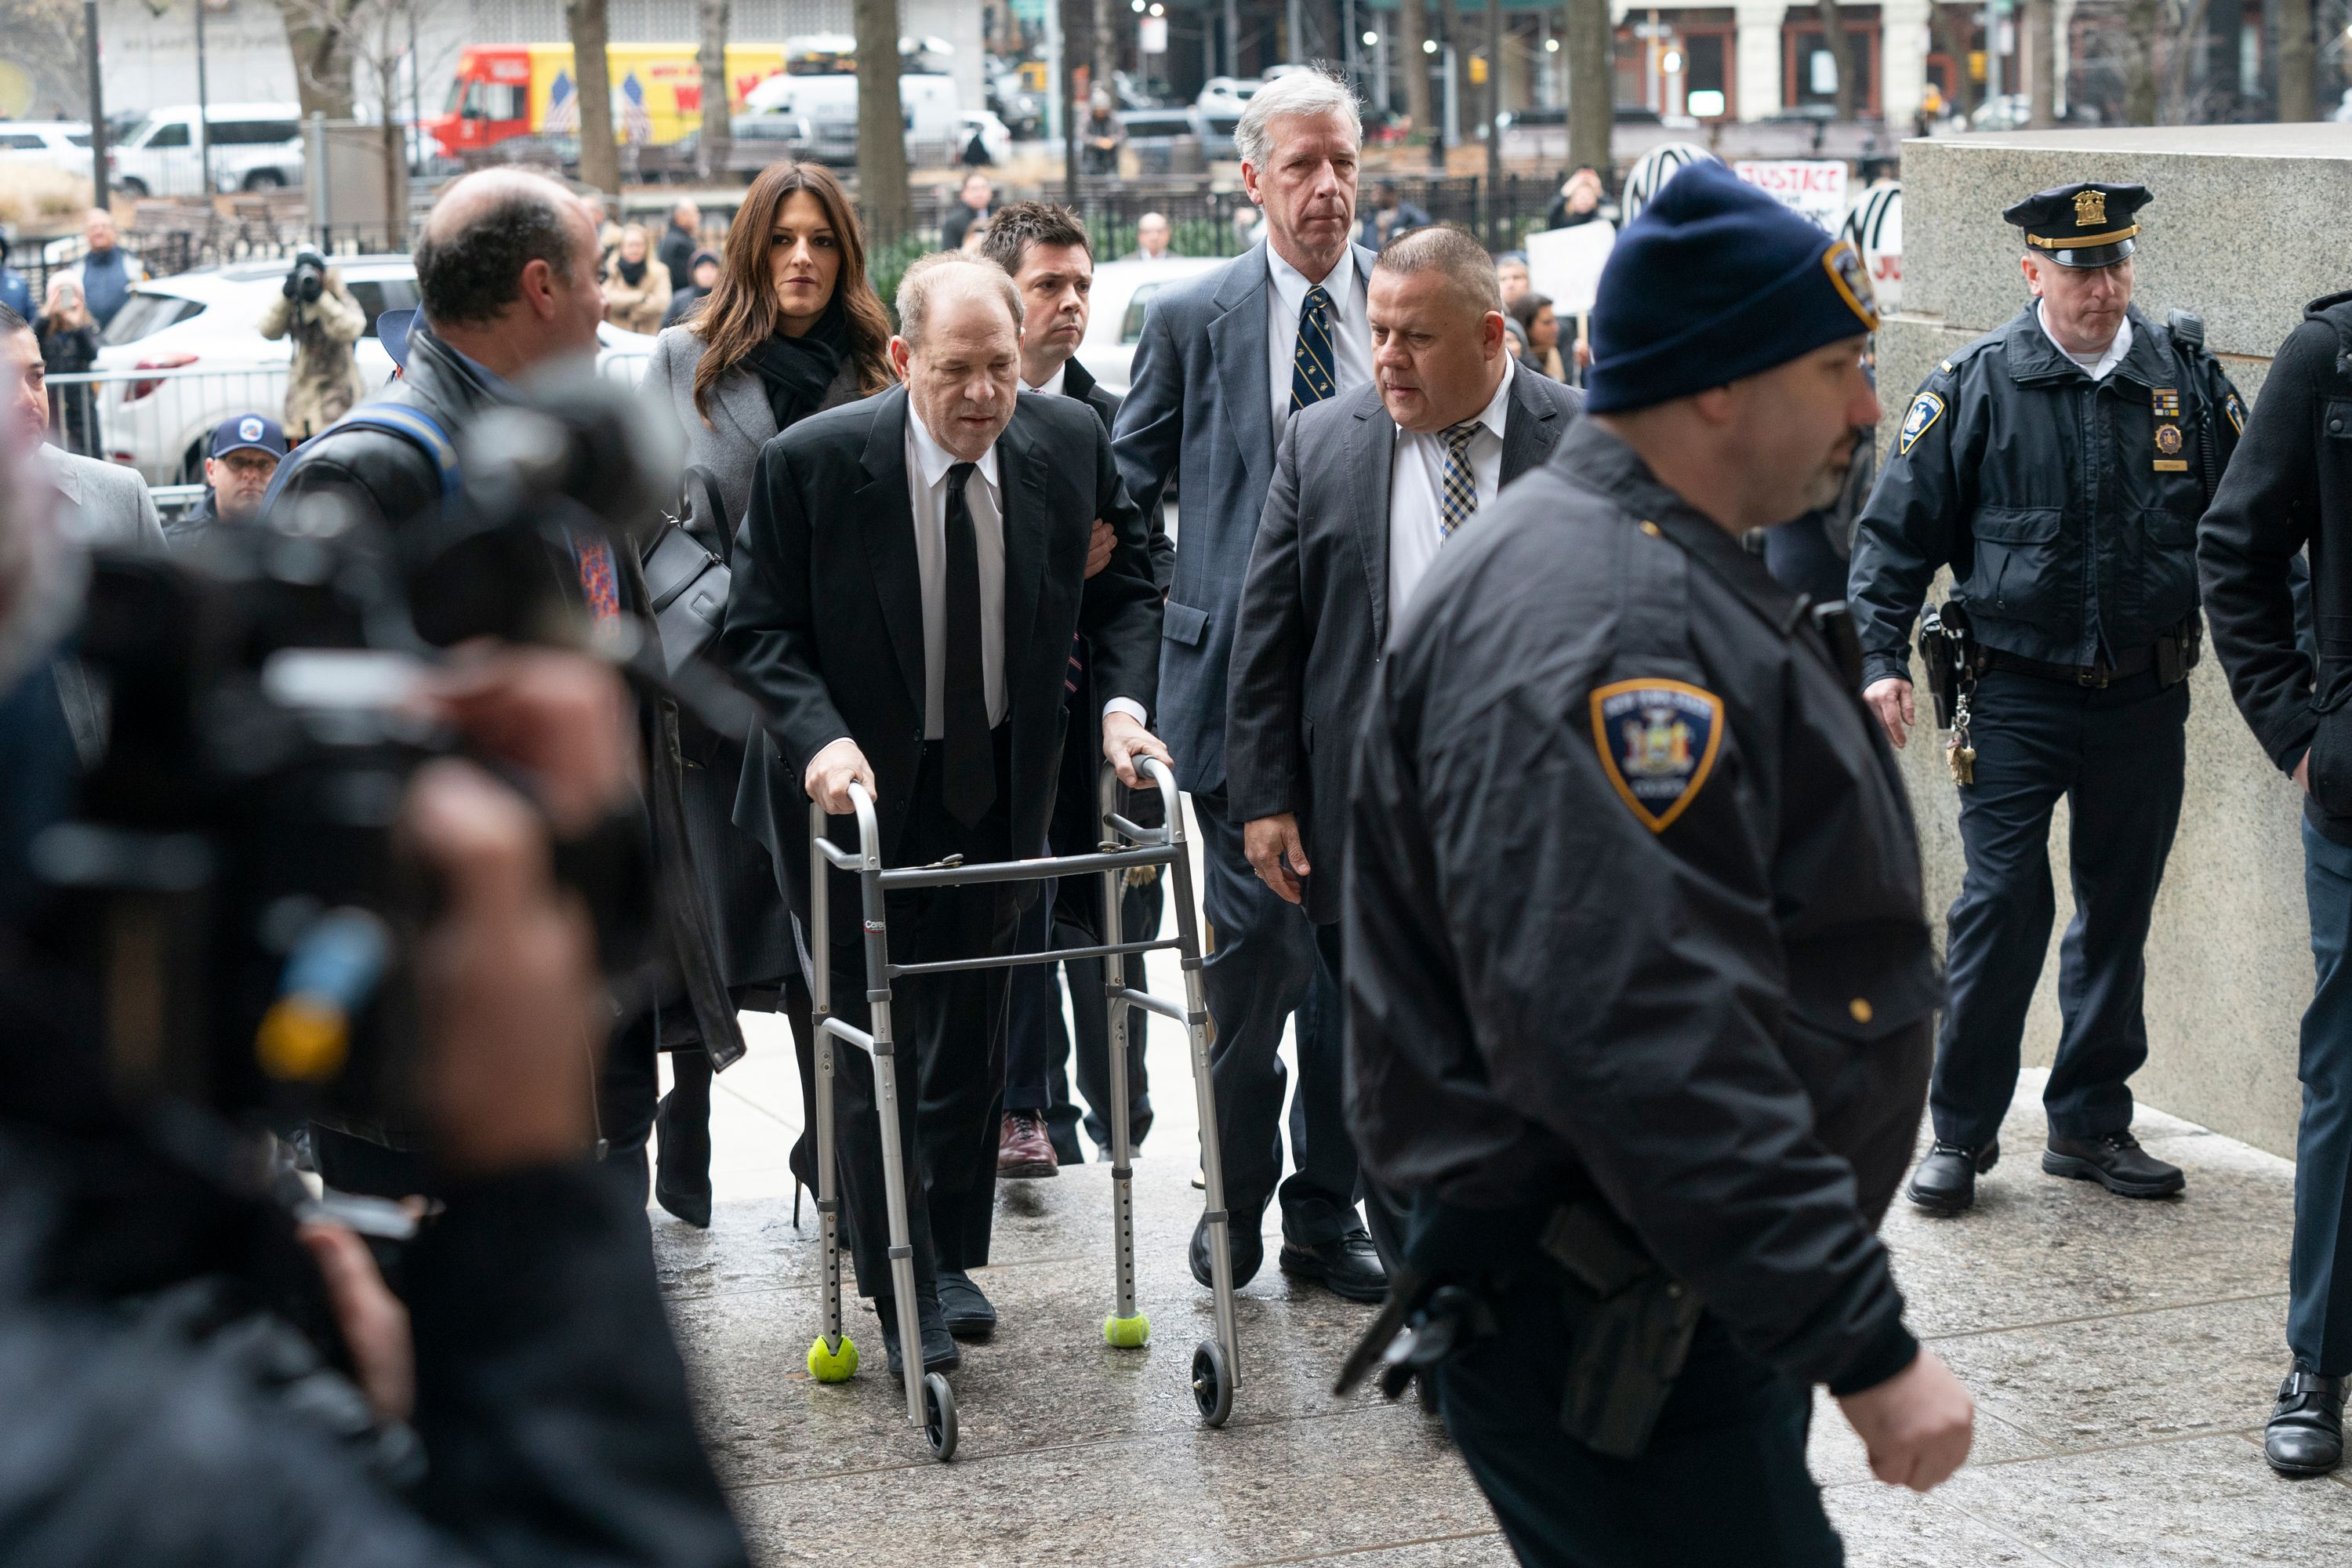 Harvey Weinstein arrives at New York Supreme Court for the first day of his trial.